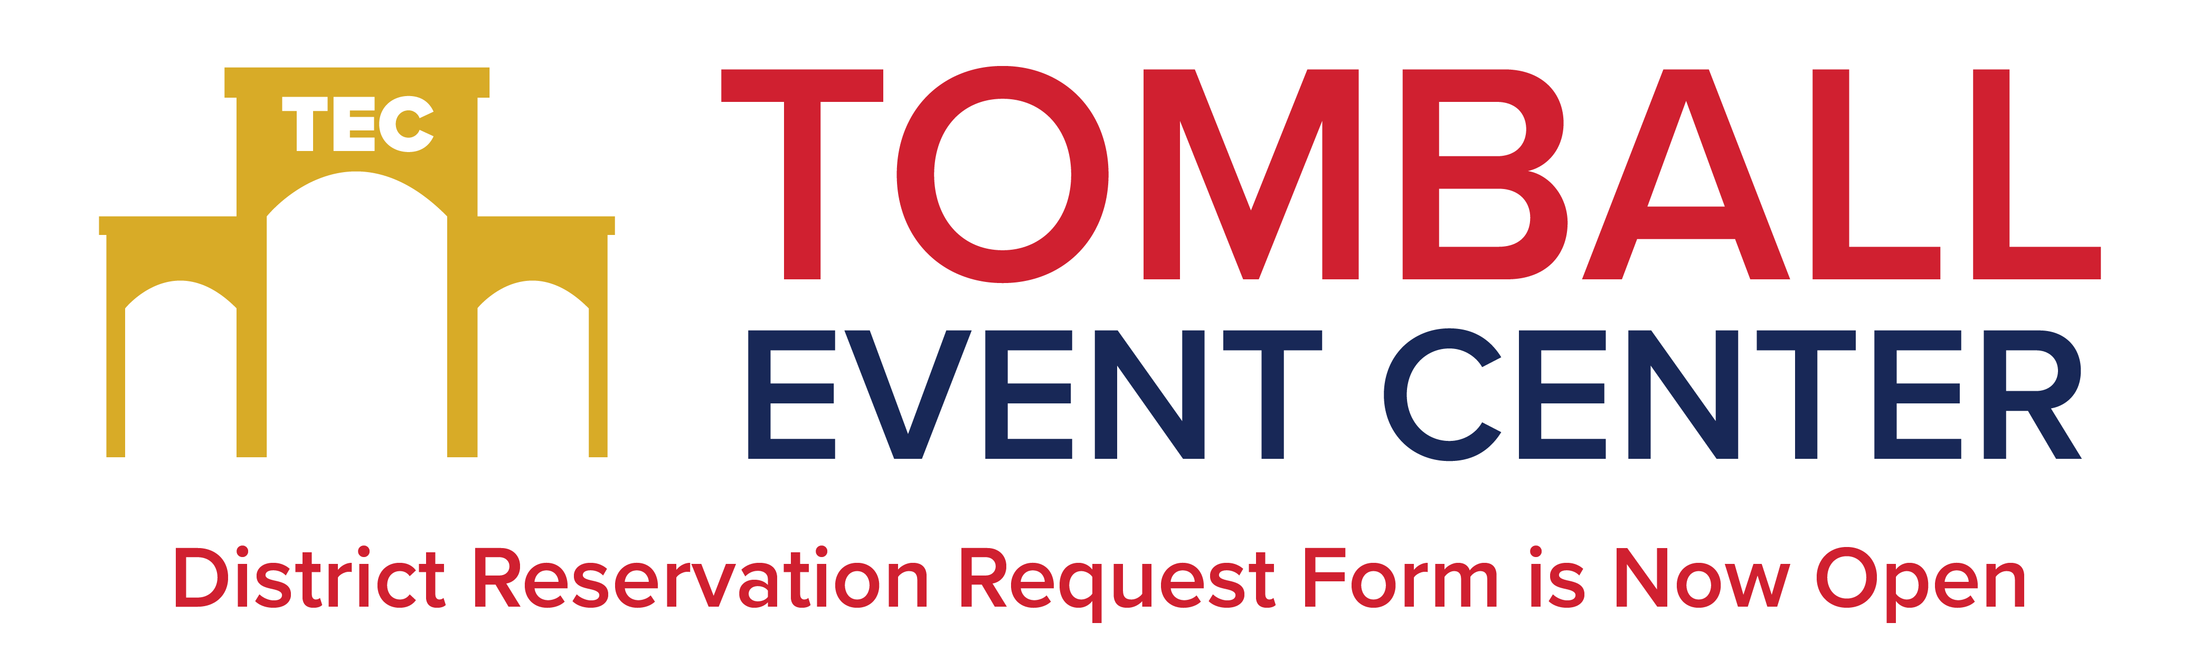 Tomball Event Center District Reservation Request Form is Now Open